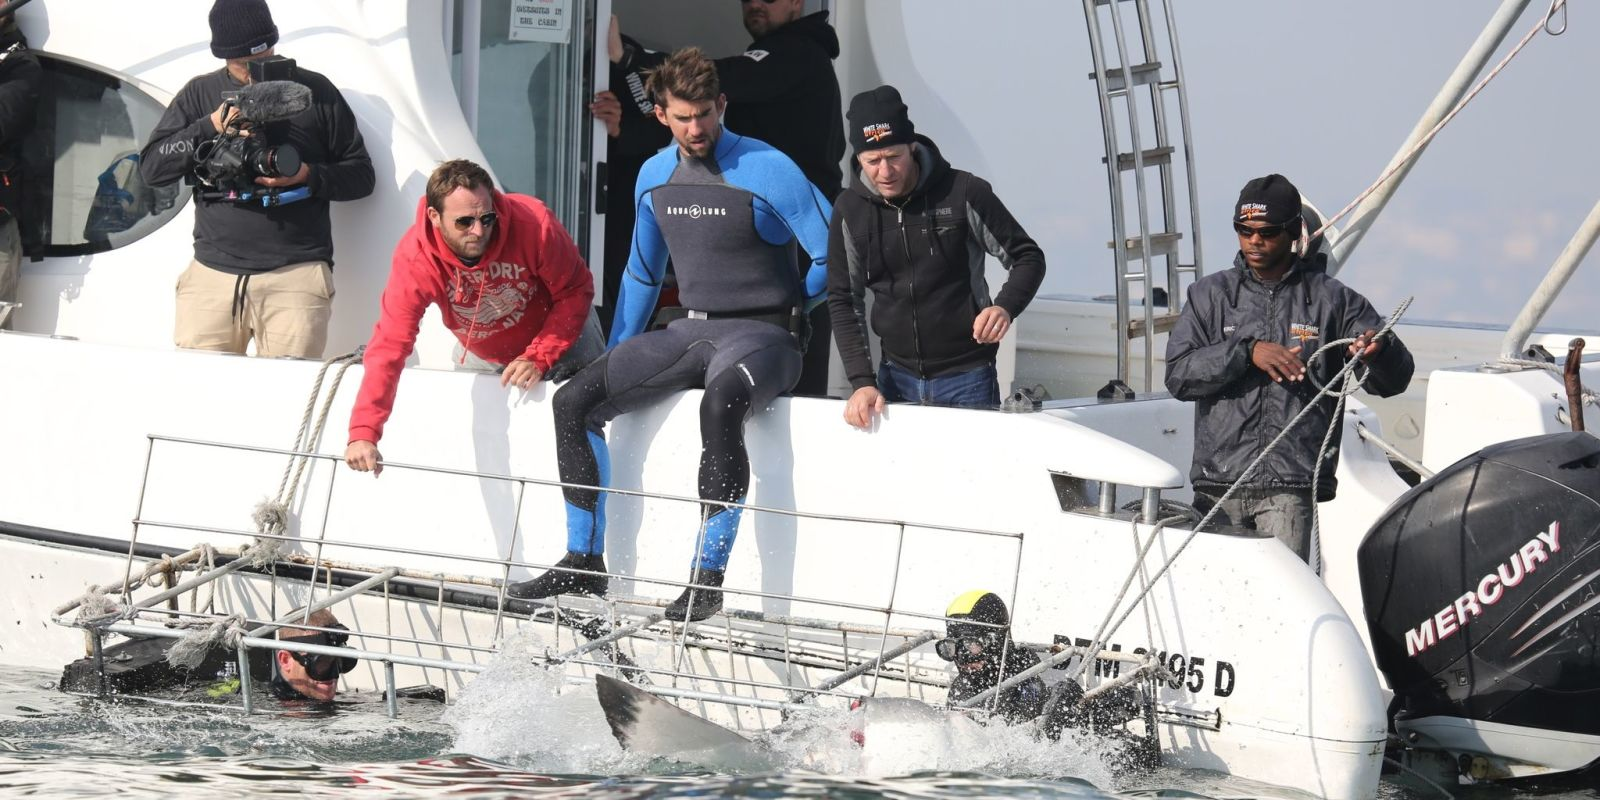 Michael Phelps defends racing against a CGI shark